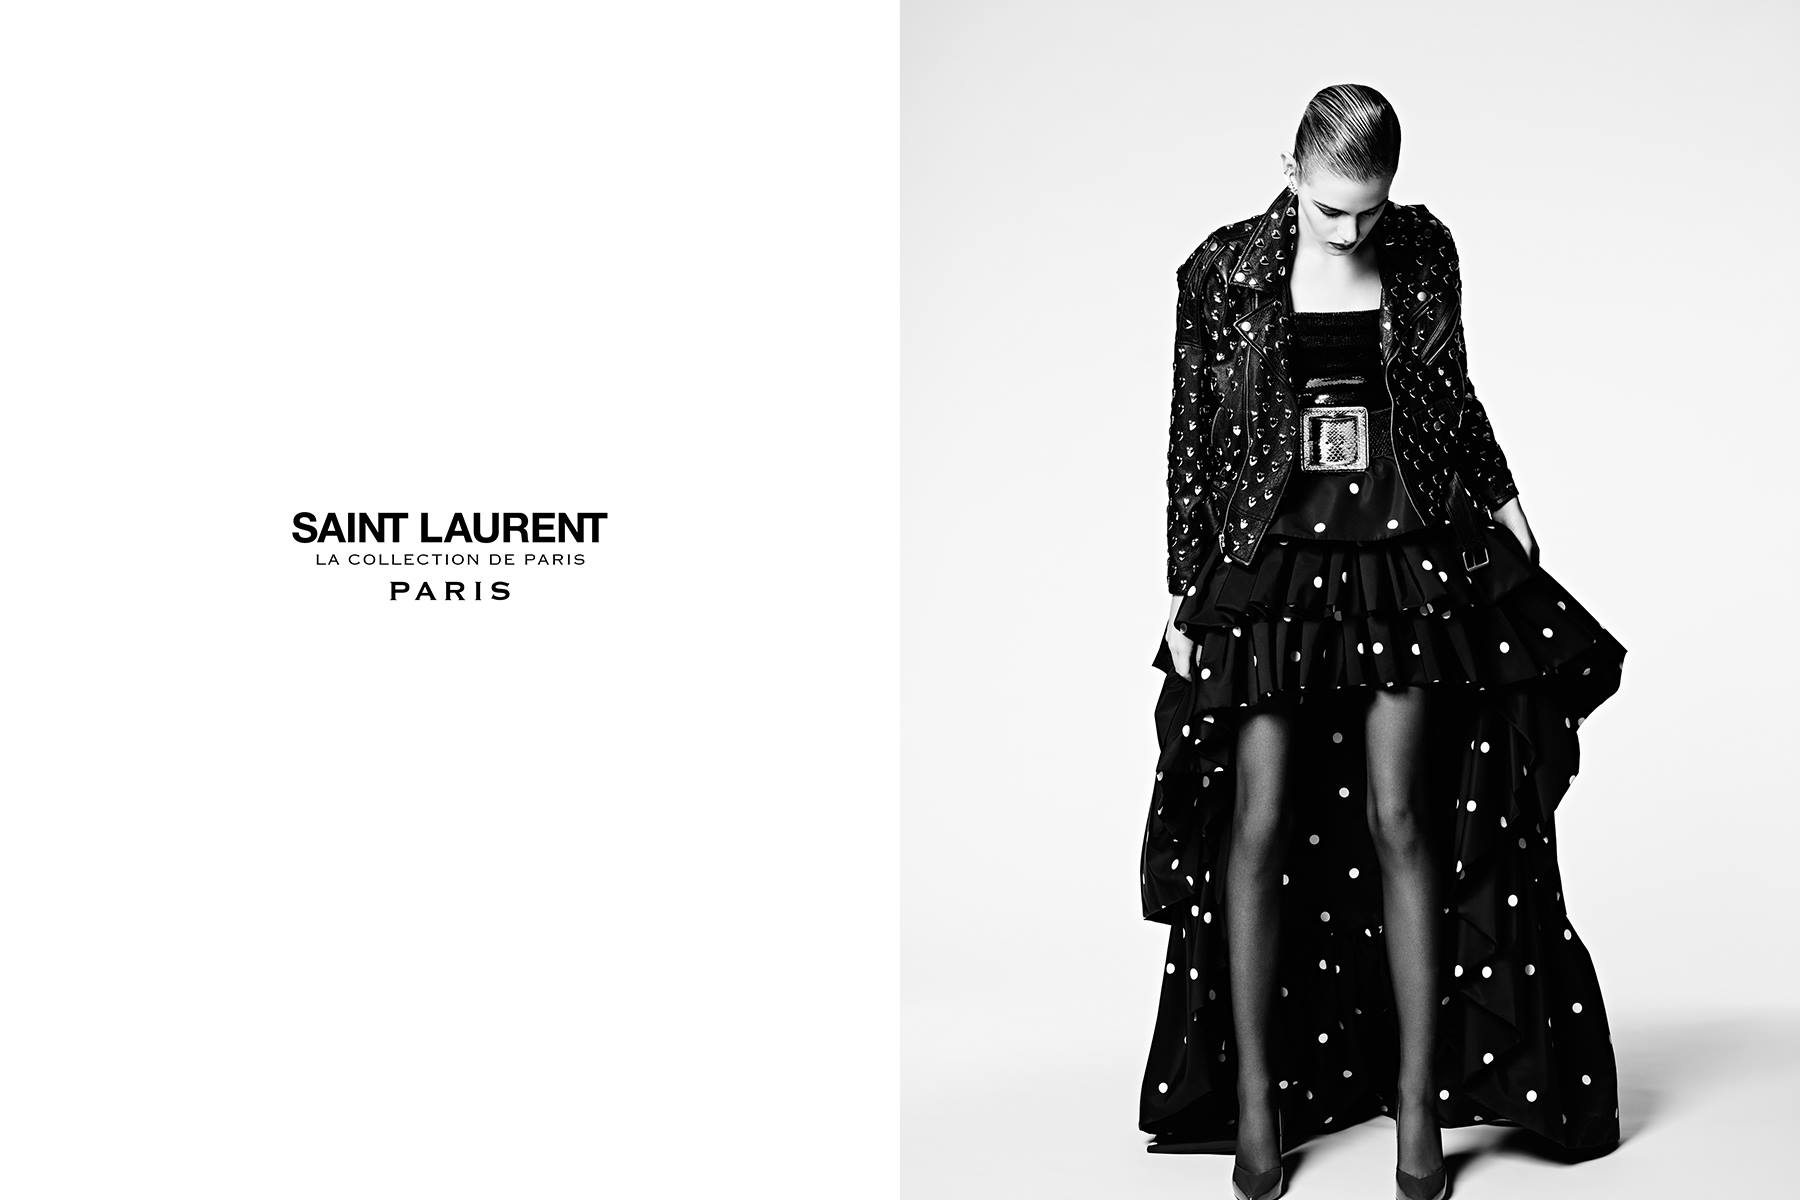 Saint Laurent will host a trunk show at Neiman Marcus. Photo courtesy of Saint Laurent on Facebook.